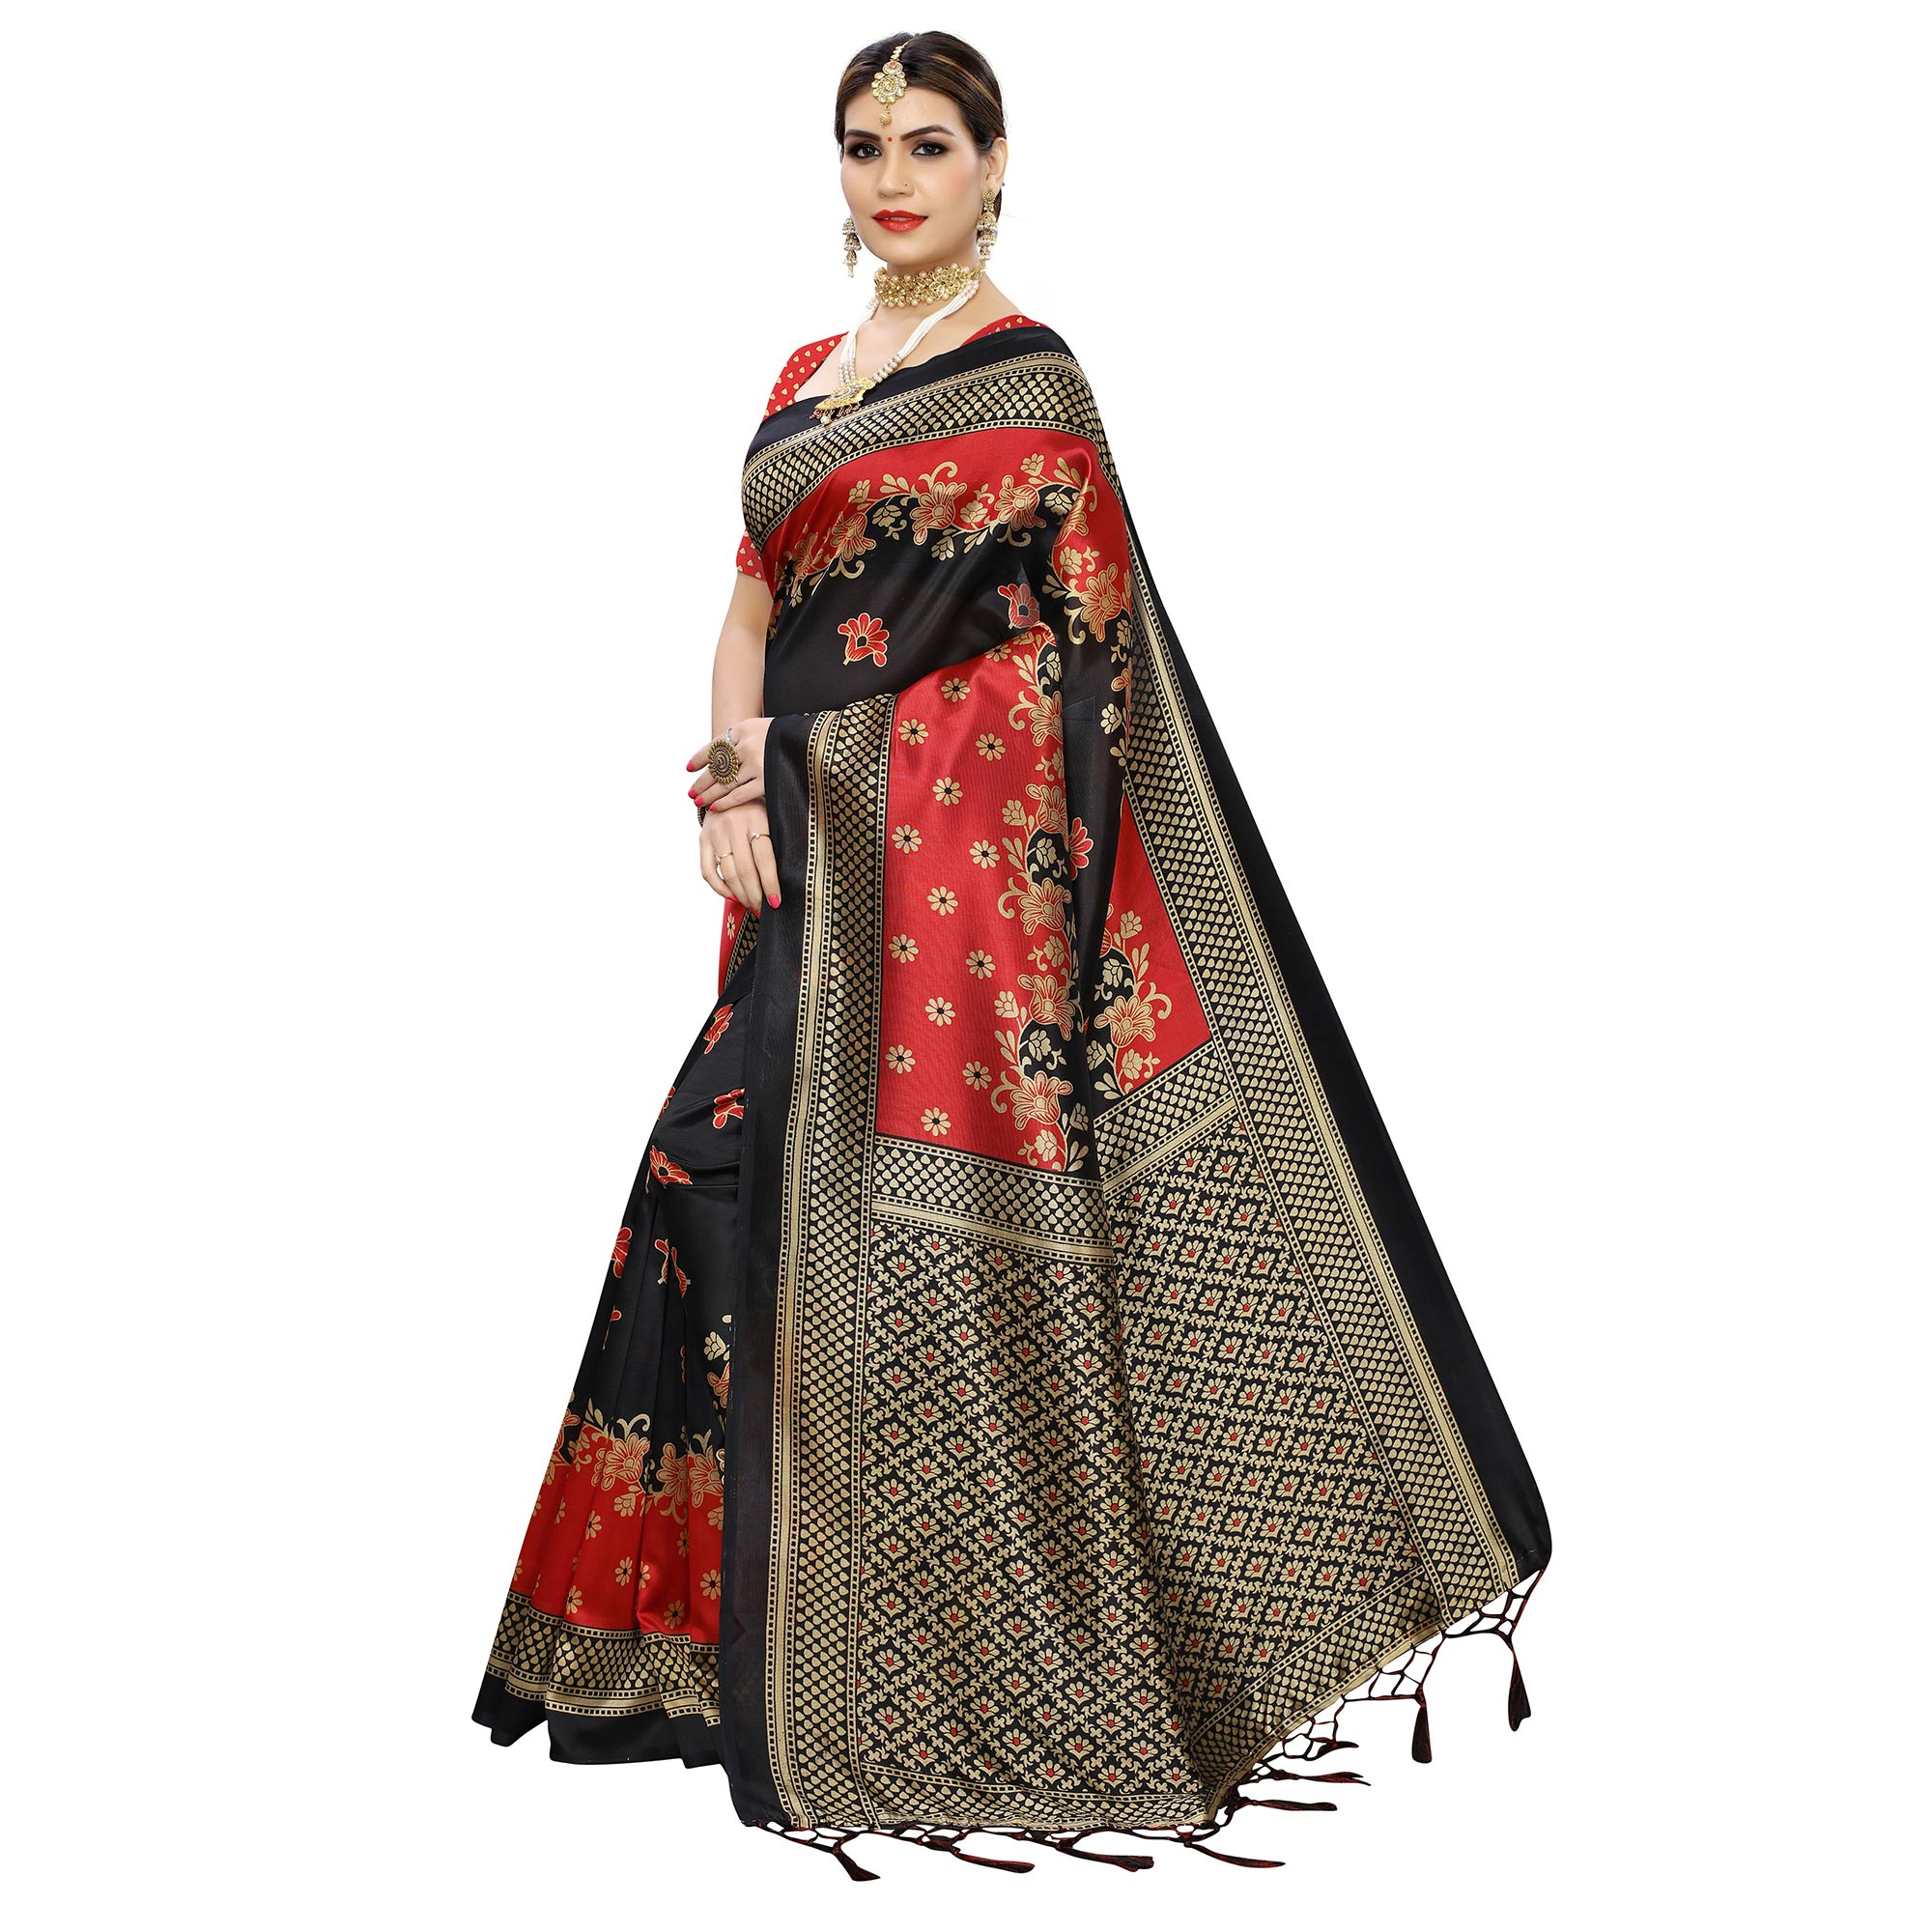 Fantastic Black Colored Festive Wear Floral Printed Art Silk Saree With Tassel